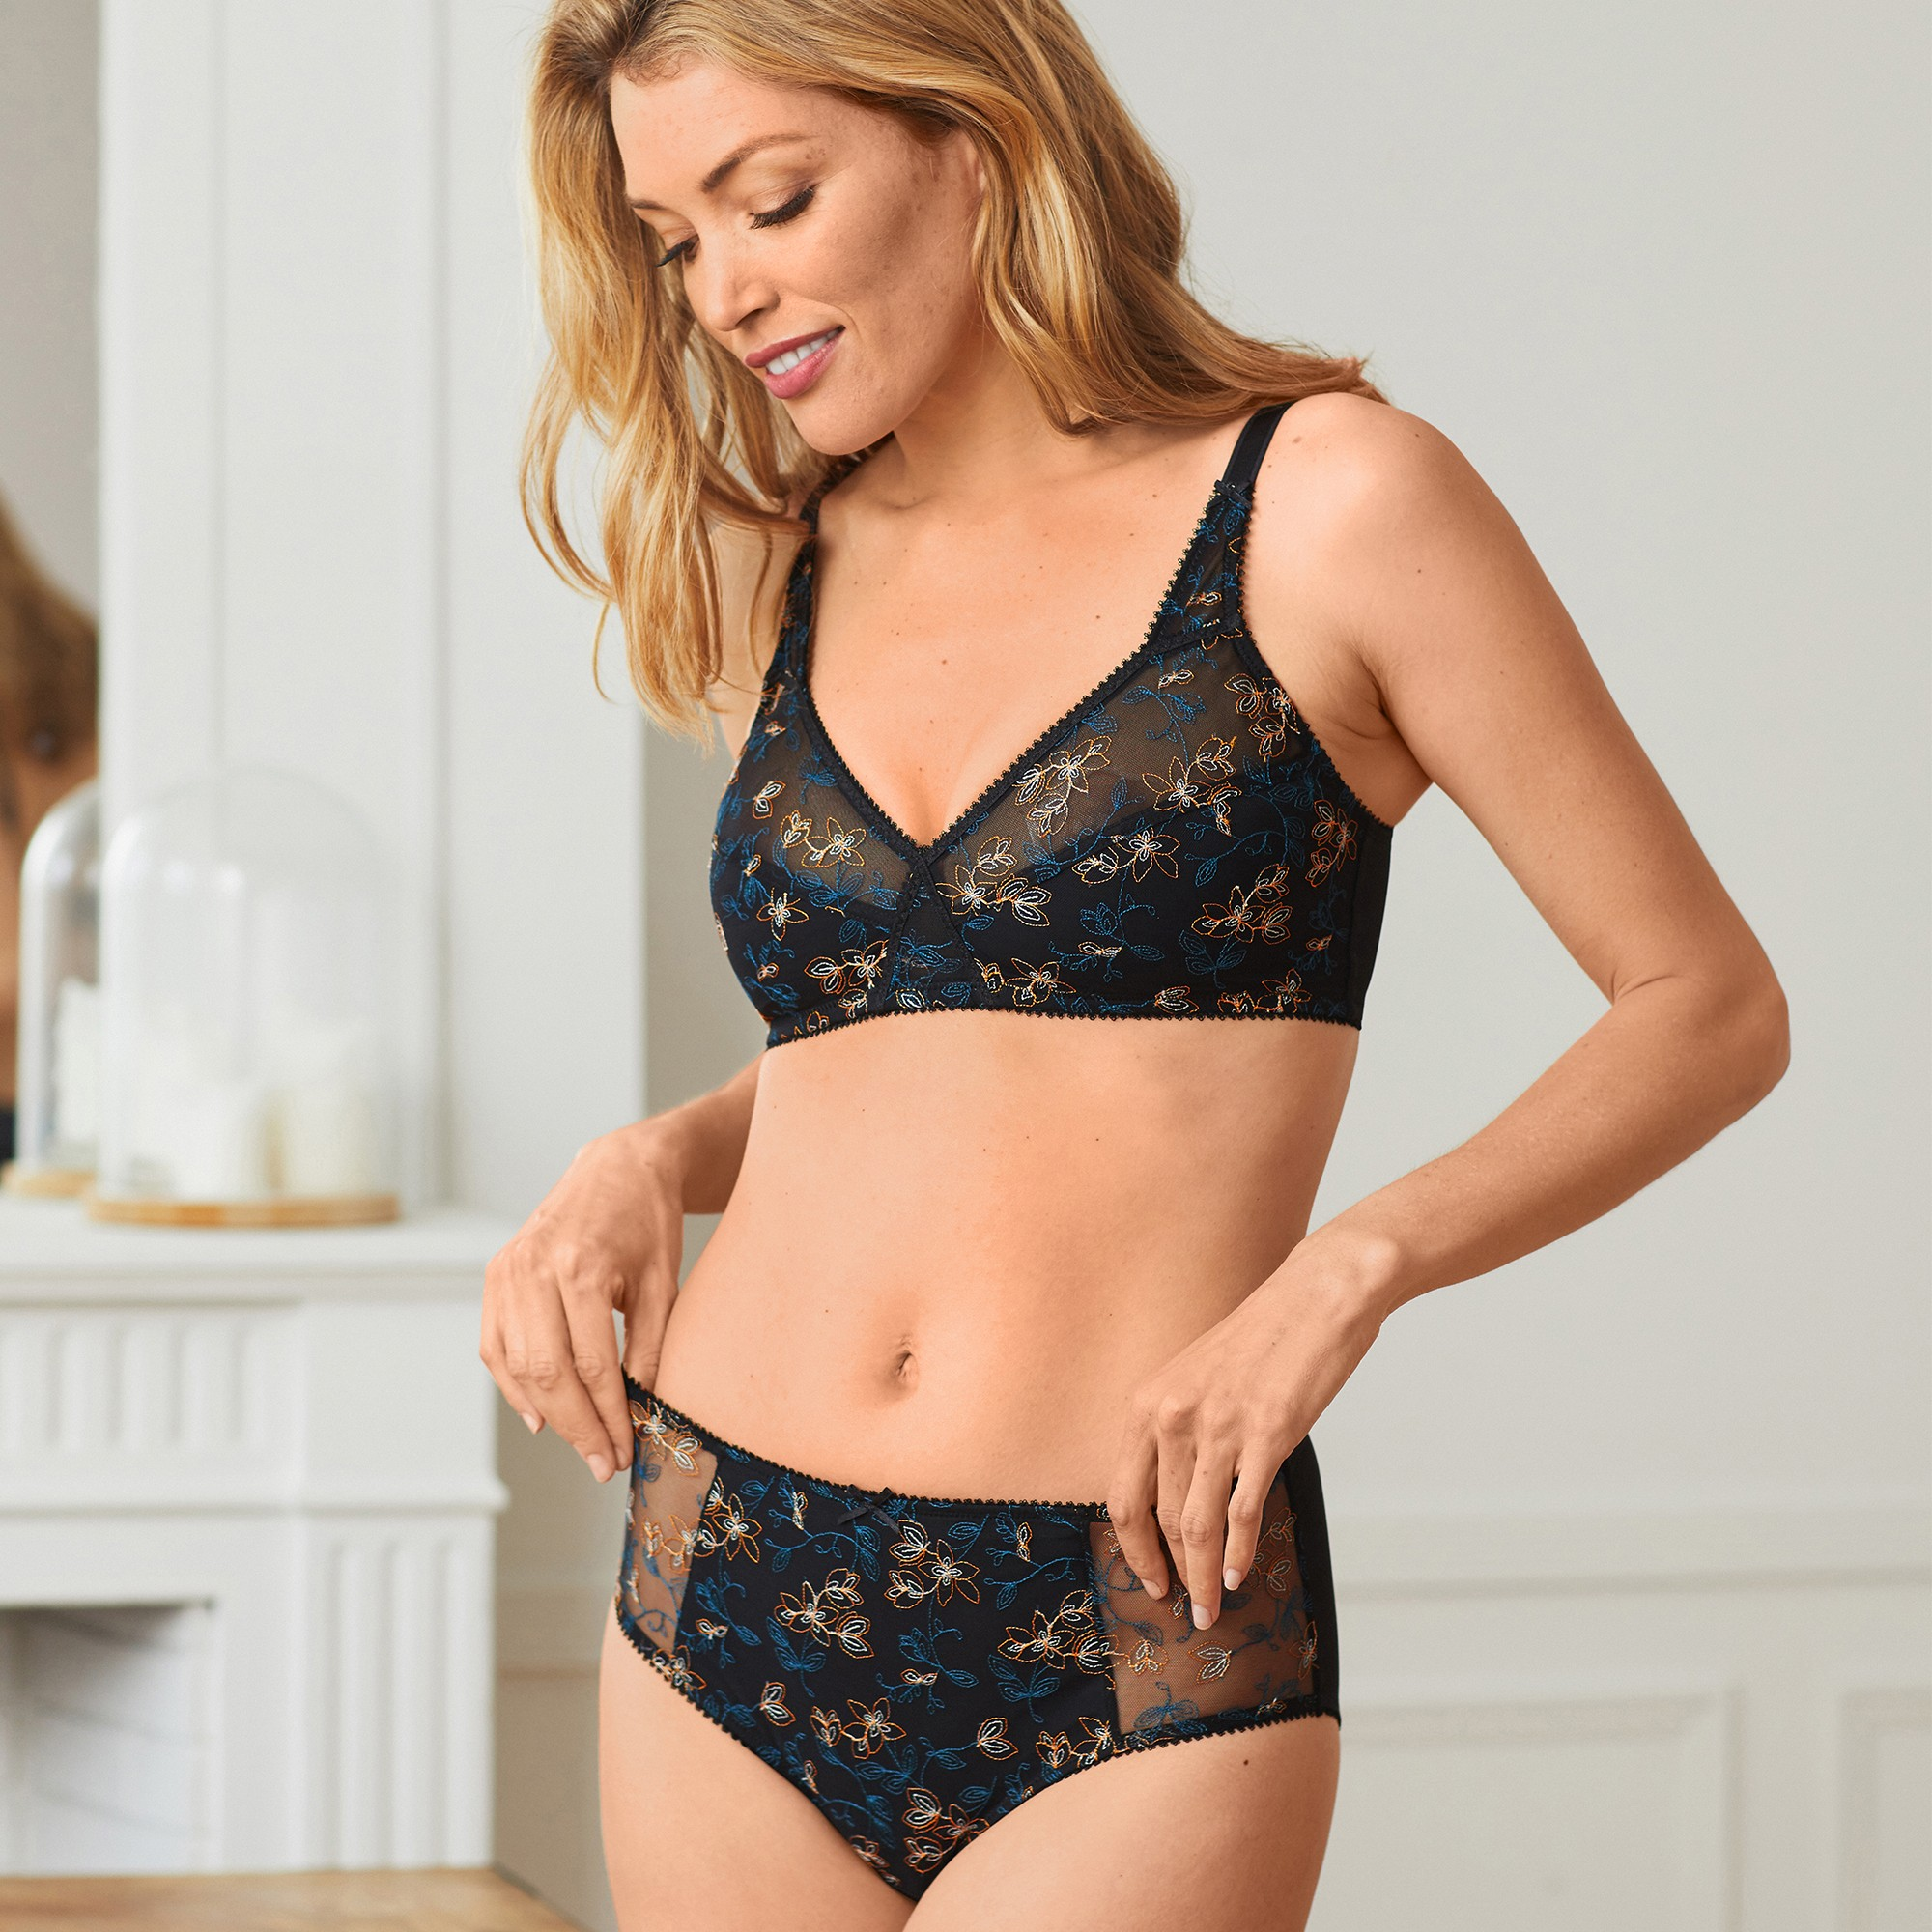 soutien gorge invisible elegance de playtex avec armatures blancheporte. Black Bedroom Furniture Sets. Home Design Ideas